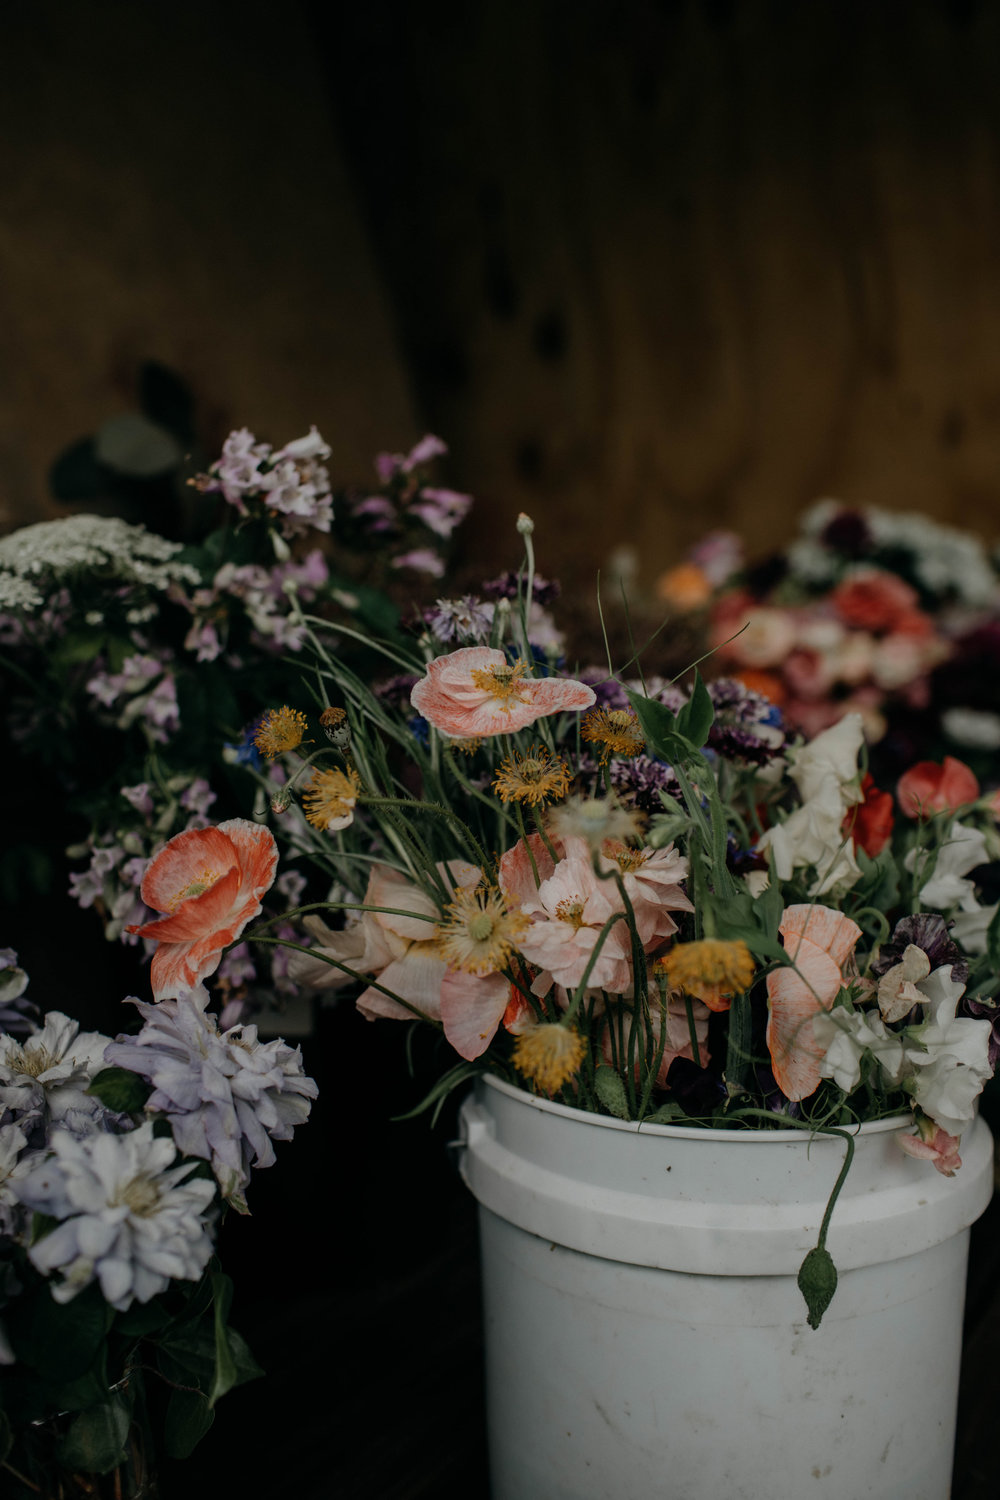 nashville floral workshop nashville tennessee wedding photographer50.jpg